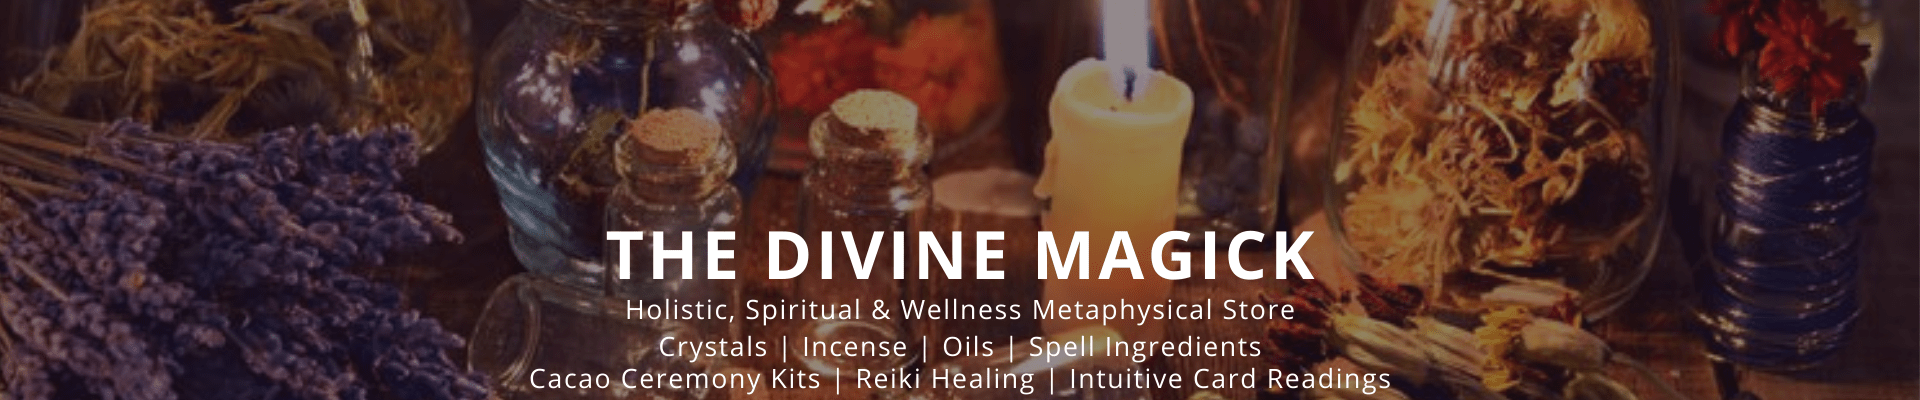 TheDivineMagick | Holistic, Spiritual & Wellness Products | Metaphysical Supplies | Guidance & Self Development Hub